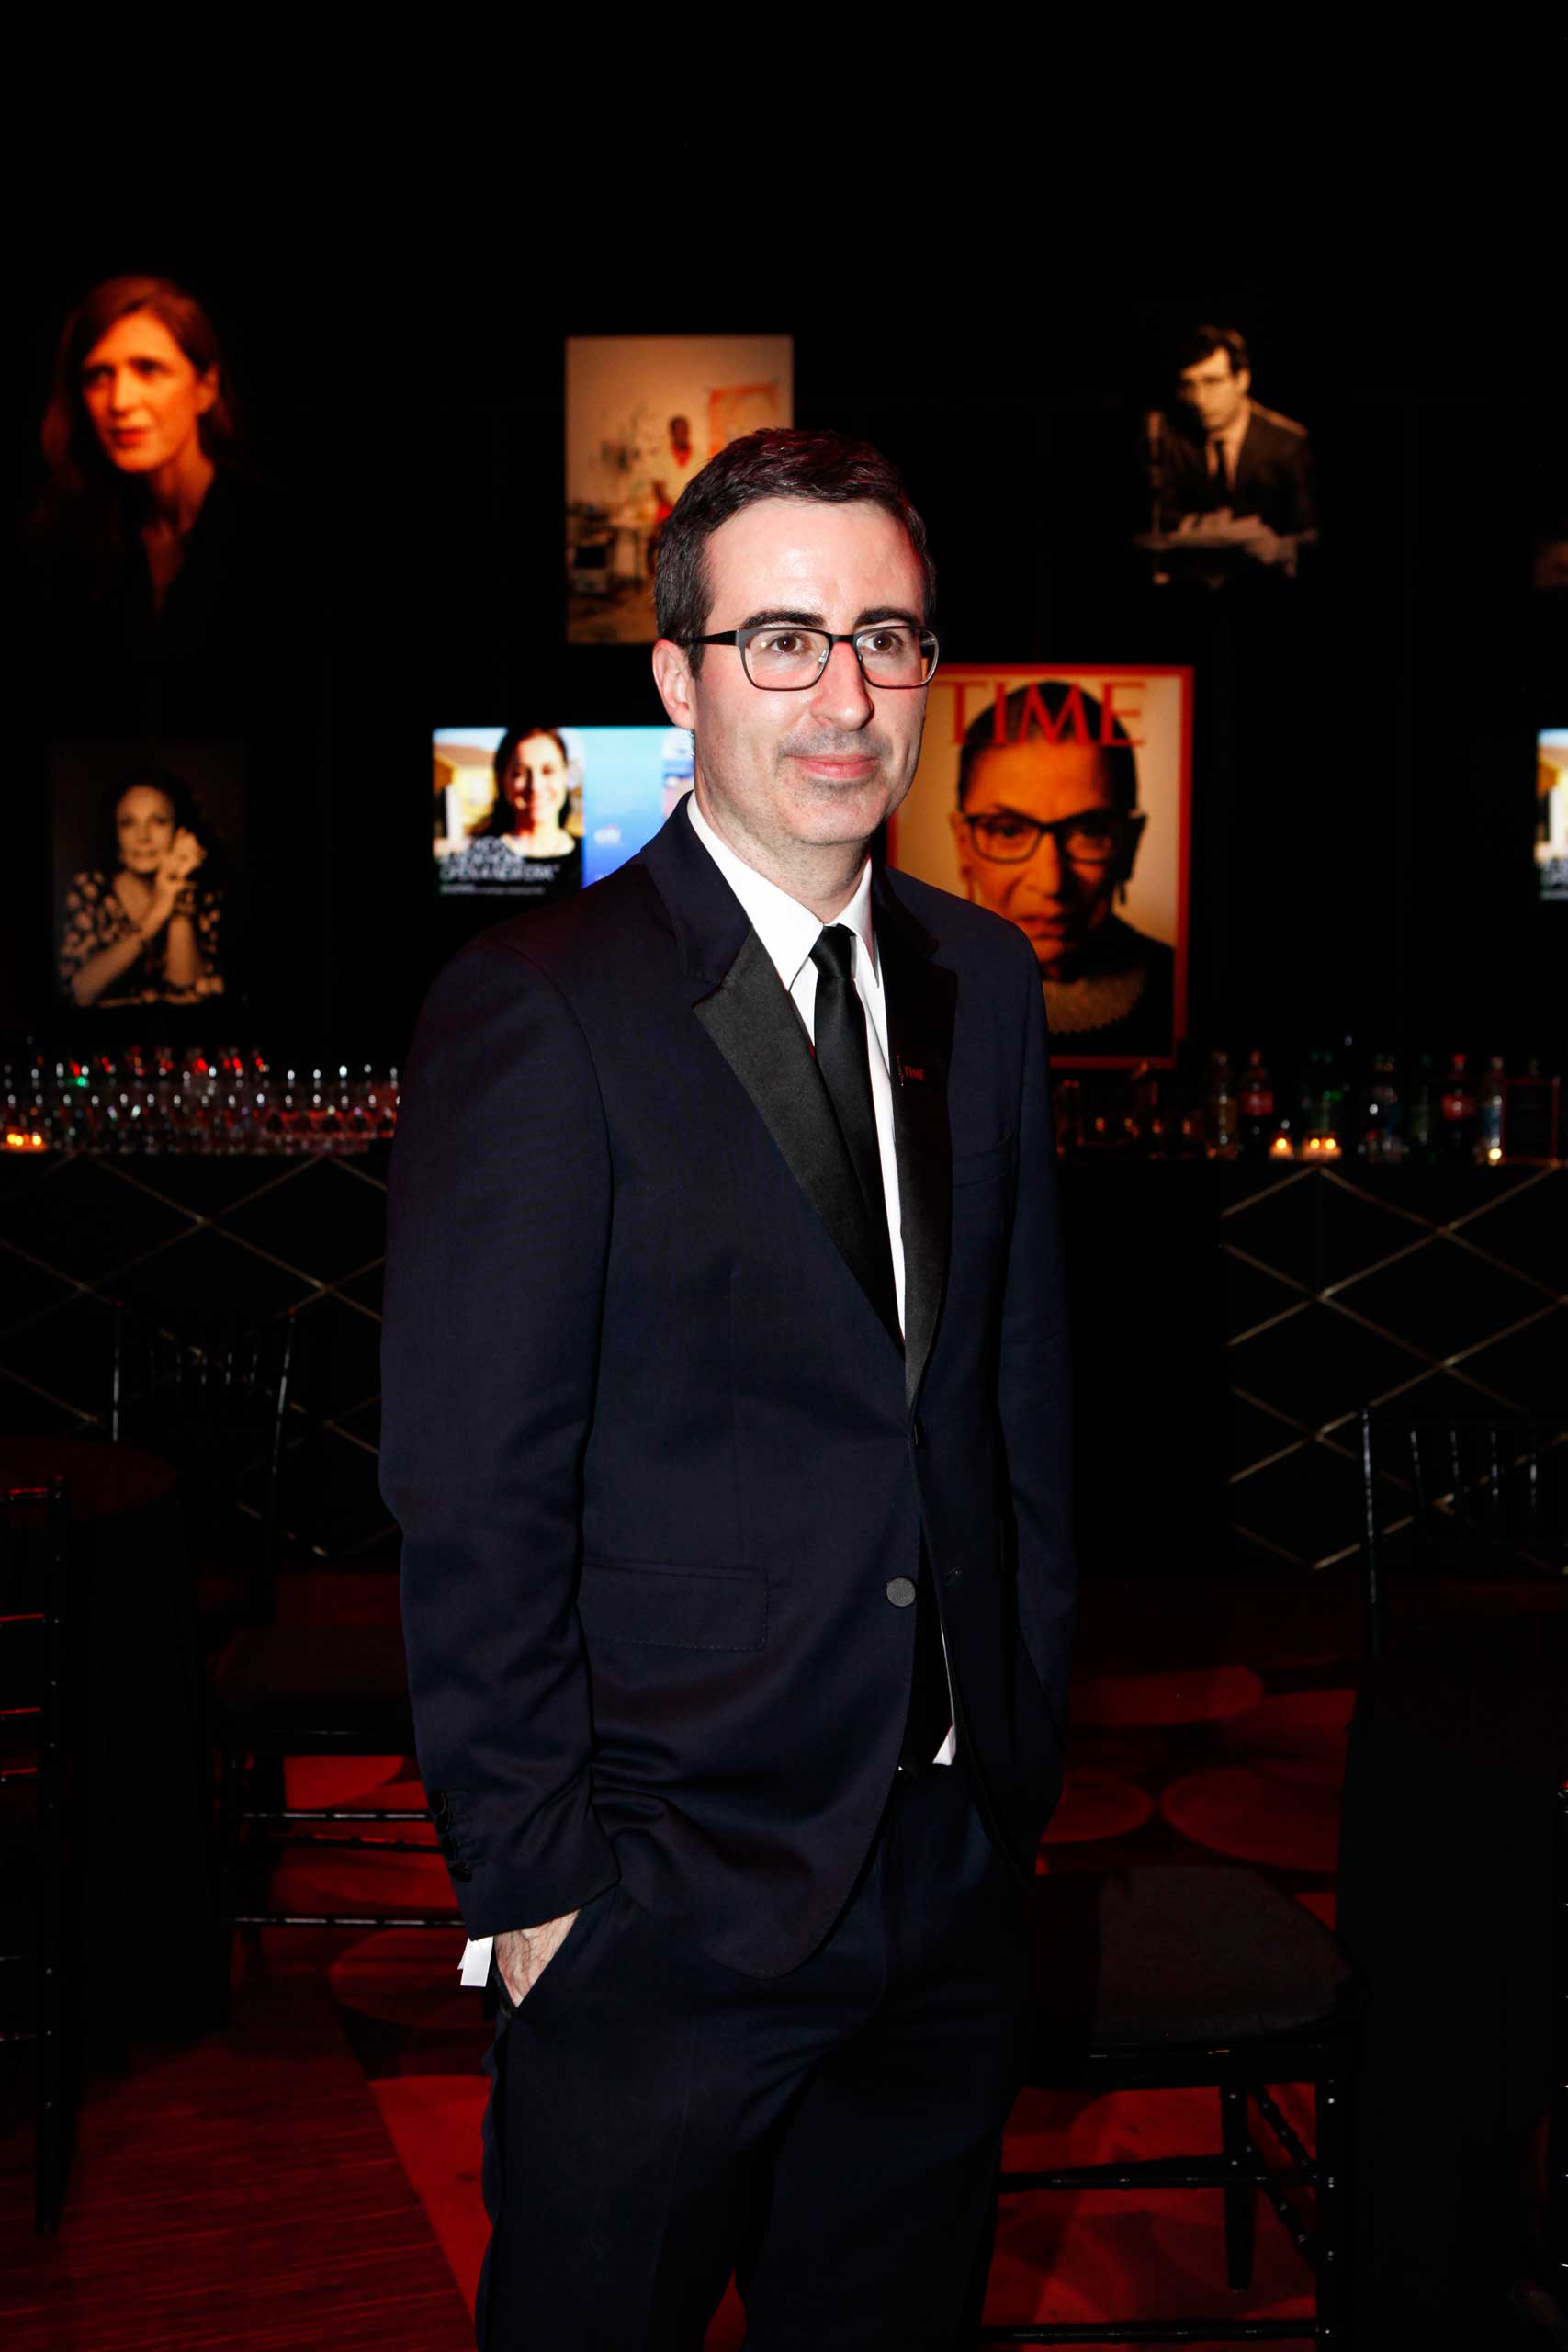 John Oliver attends the TIME 100 Gala at Jazz at Lincoln Center in New York City  April 21, 2015.